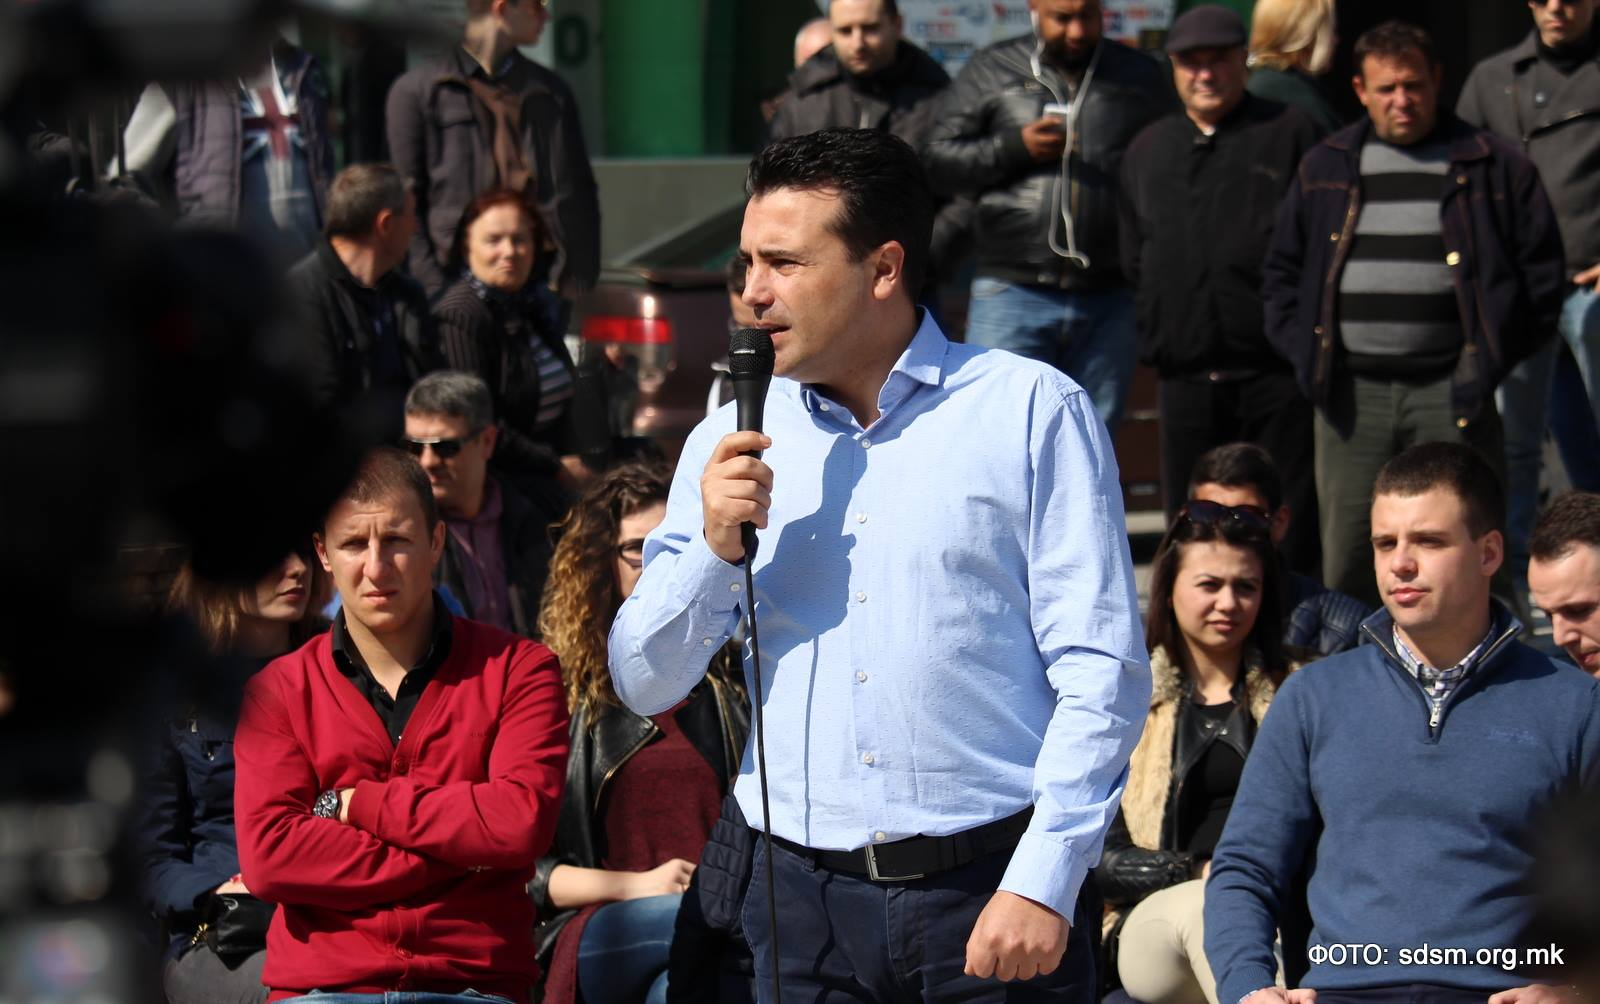 Macedonia opposition leader Zoran Zaev stands an excellent chance of winning power in elections that may still be held on June 5. (Facebook)